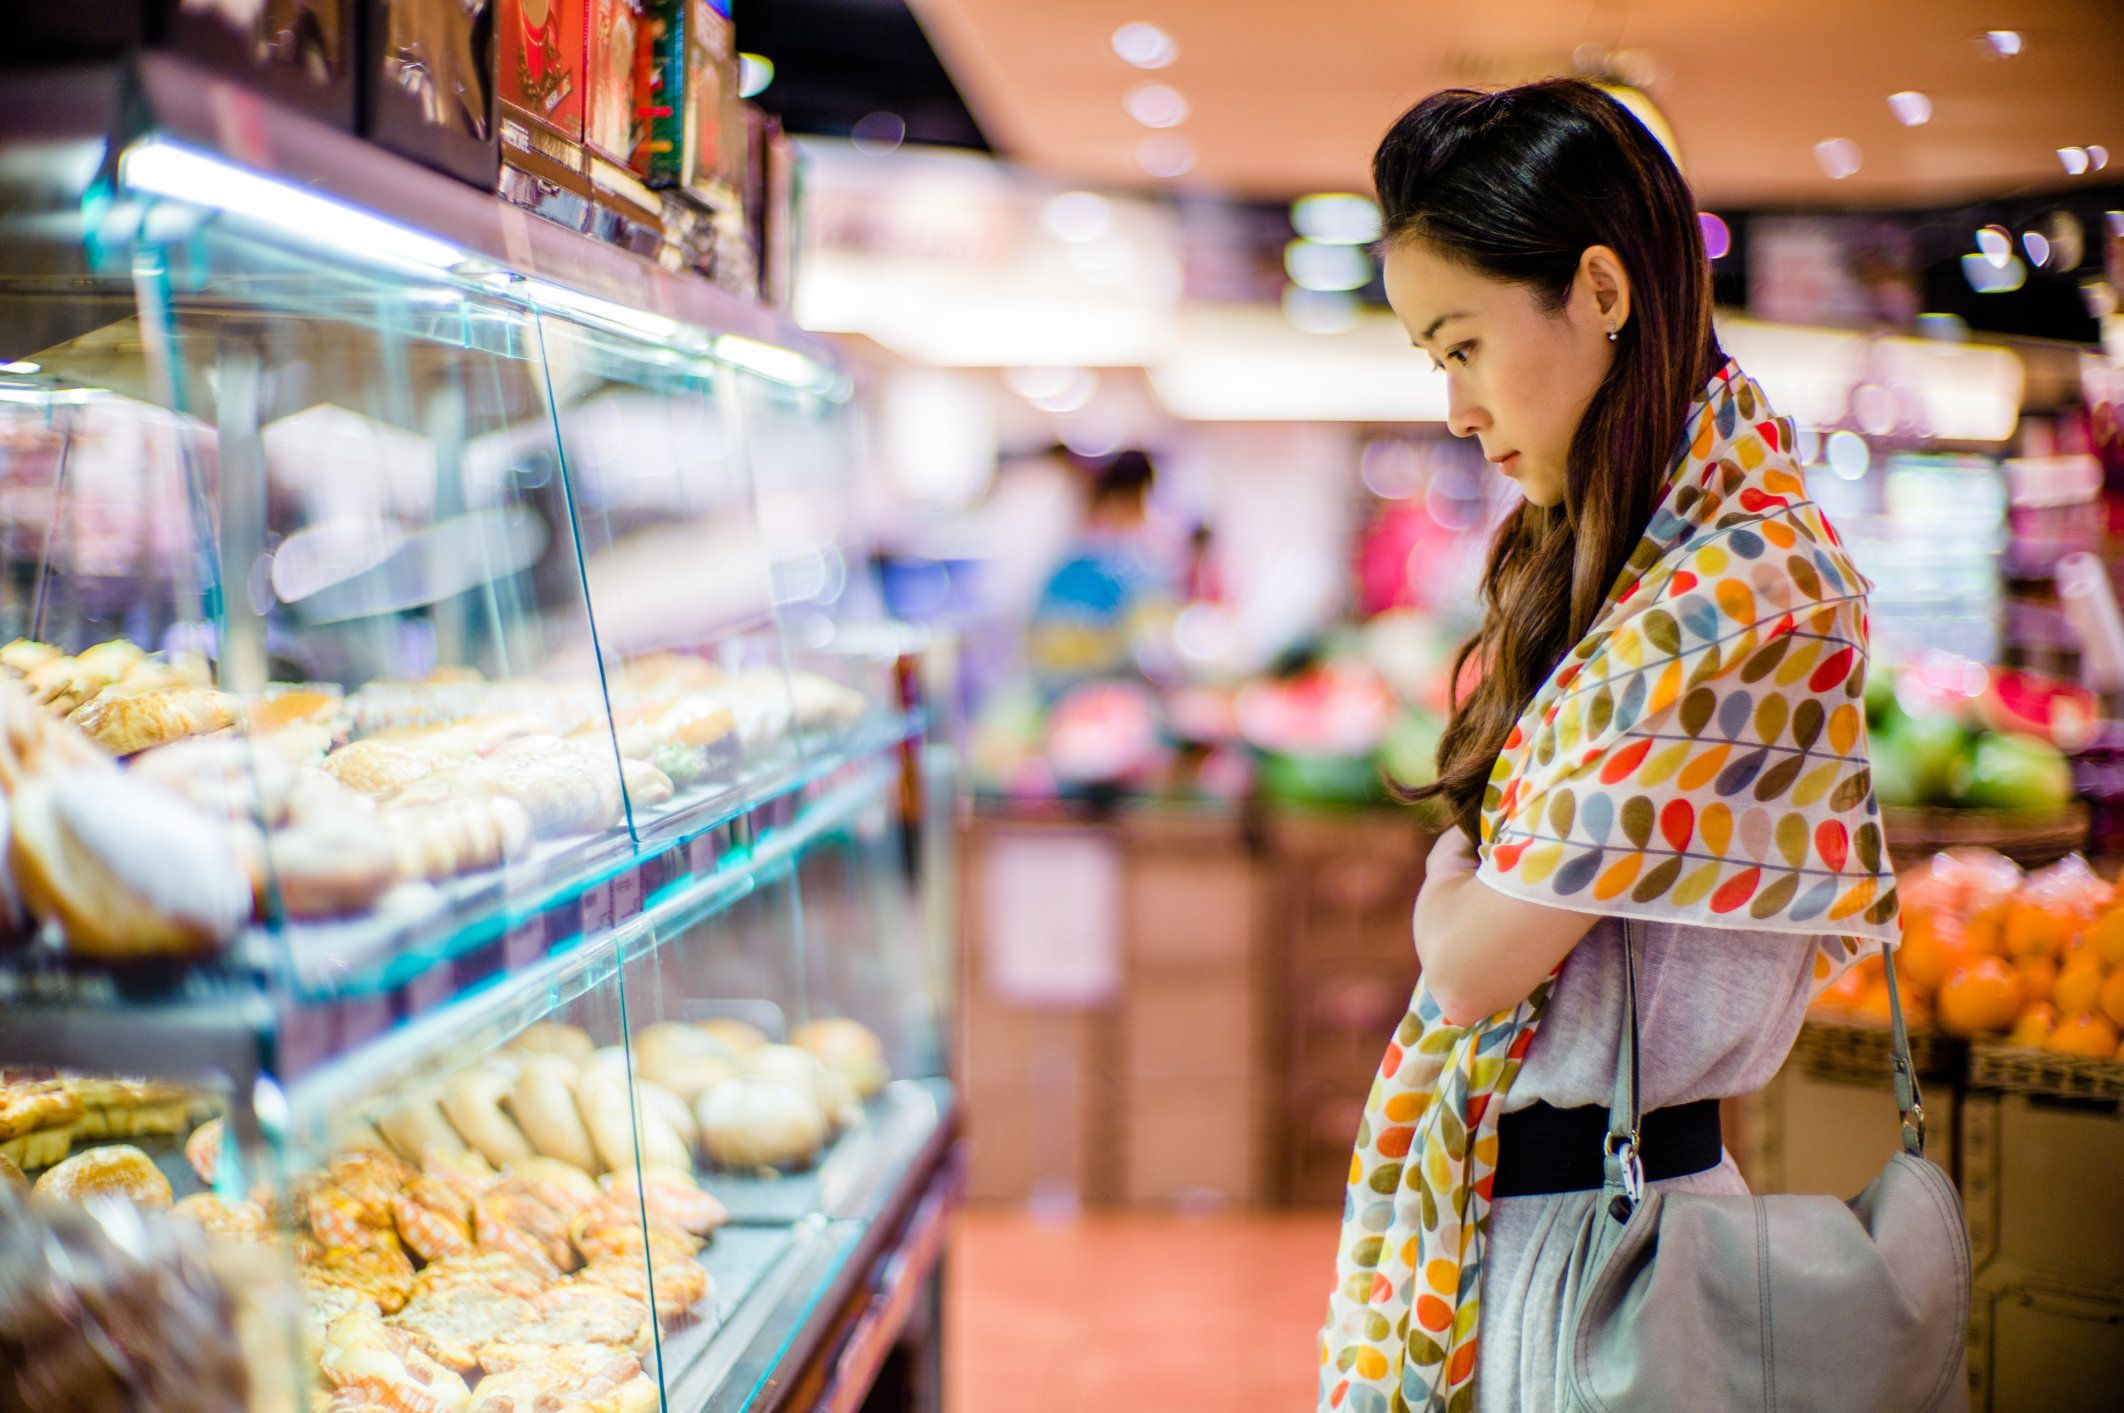 Pretty young lady looking at bakery display in a supermarket.